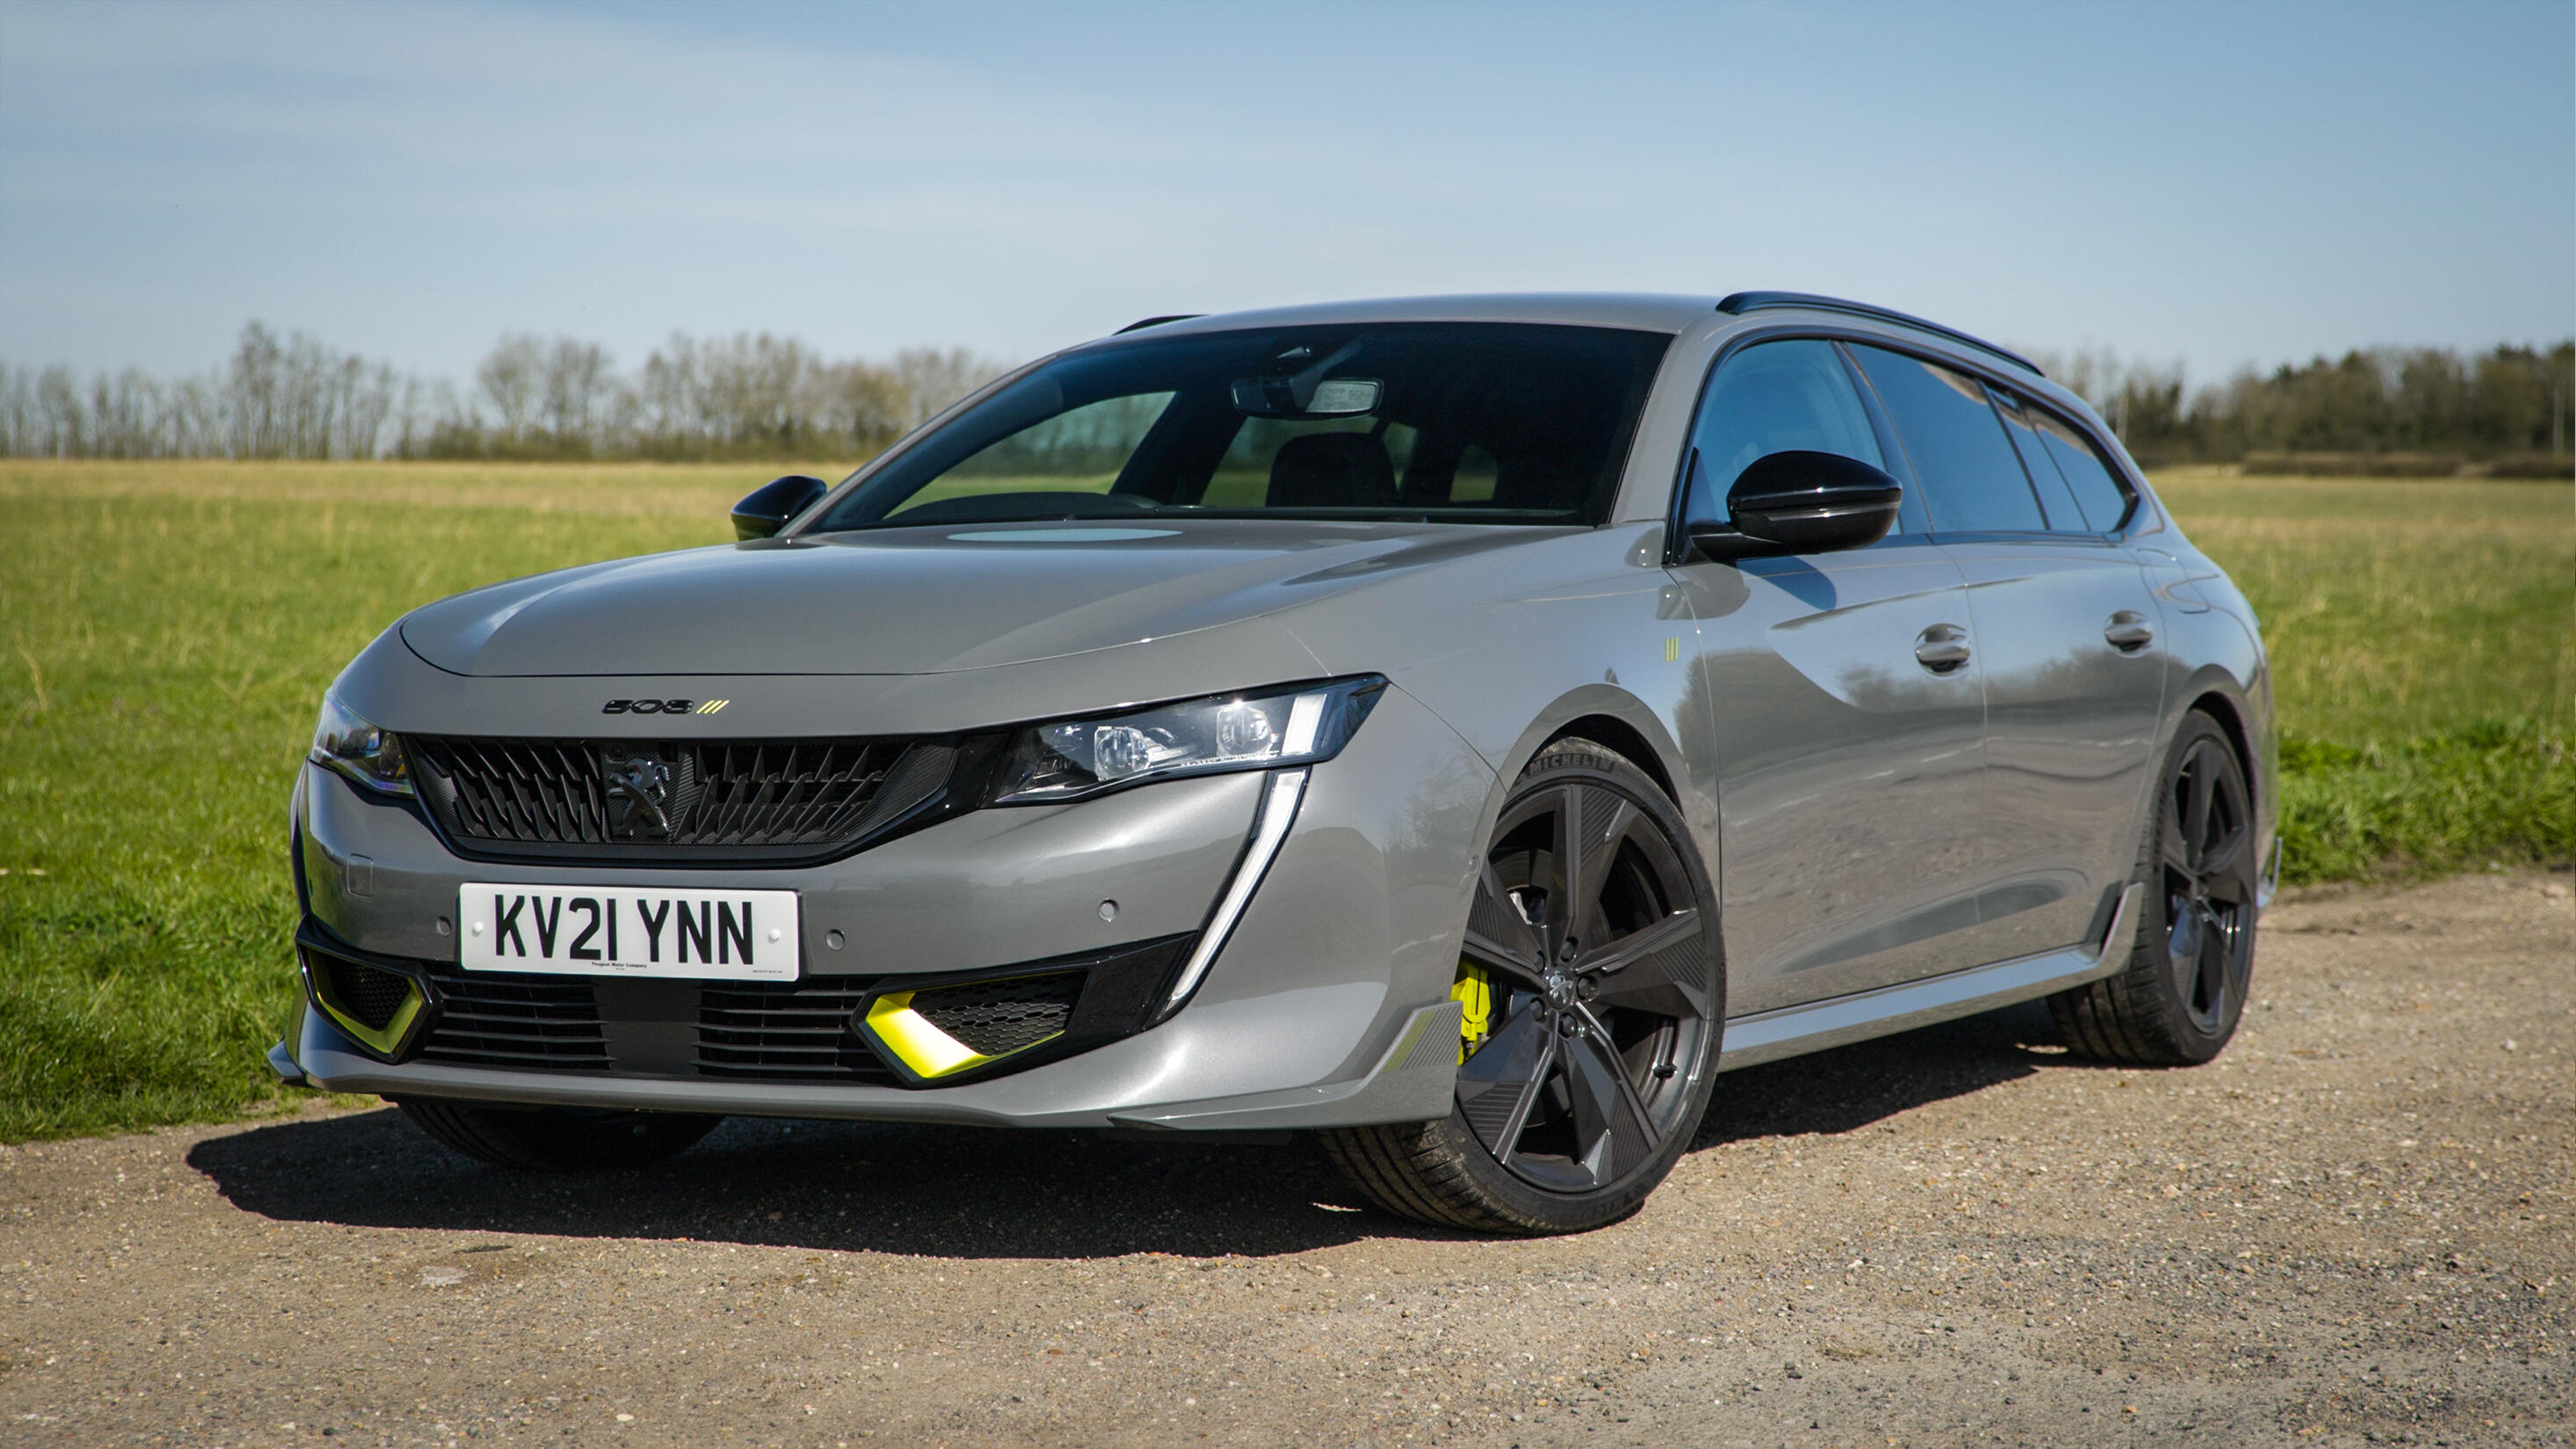 Video: The Peugeot 508 SW PSE is a new contender in the fast station wagon category